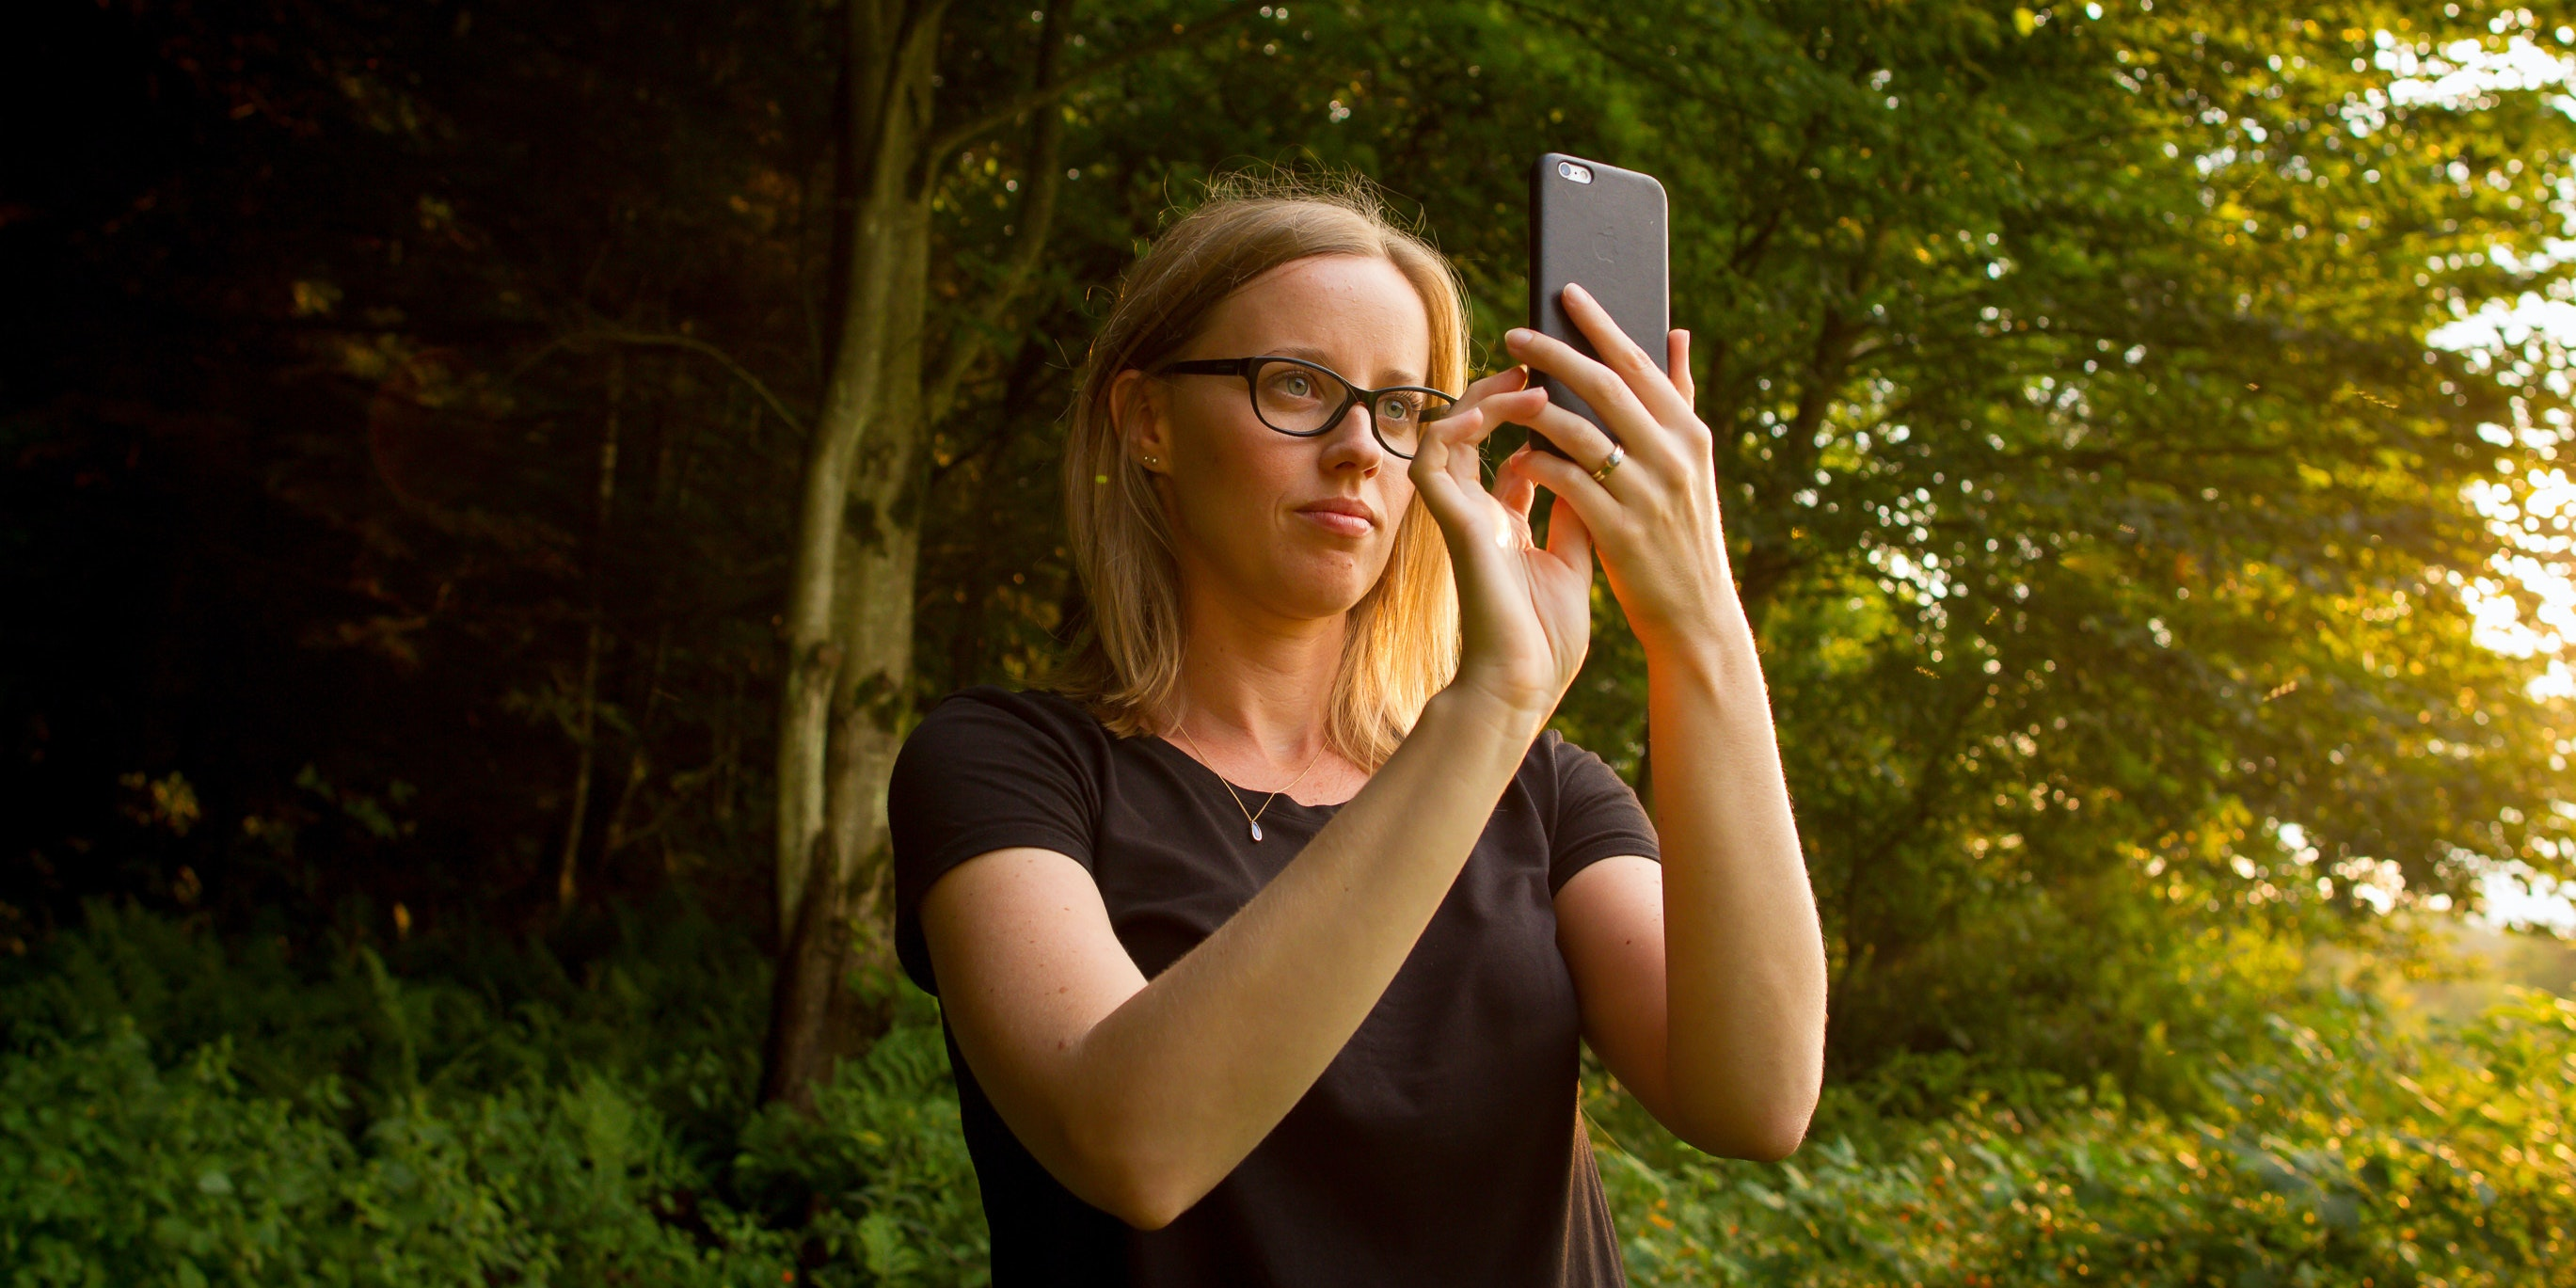 University of Vermont researcher Laura Sonter led a team that successfully used social media images --including selfies -- to measure the use and value of outdoor recreation on public lands. The team's study analyzed more than 7,000 geotagged photos on Flickr to calculate that conserved lands contributed $1.8 billion to Vermont's tourism industry between 2007-2014.